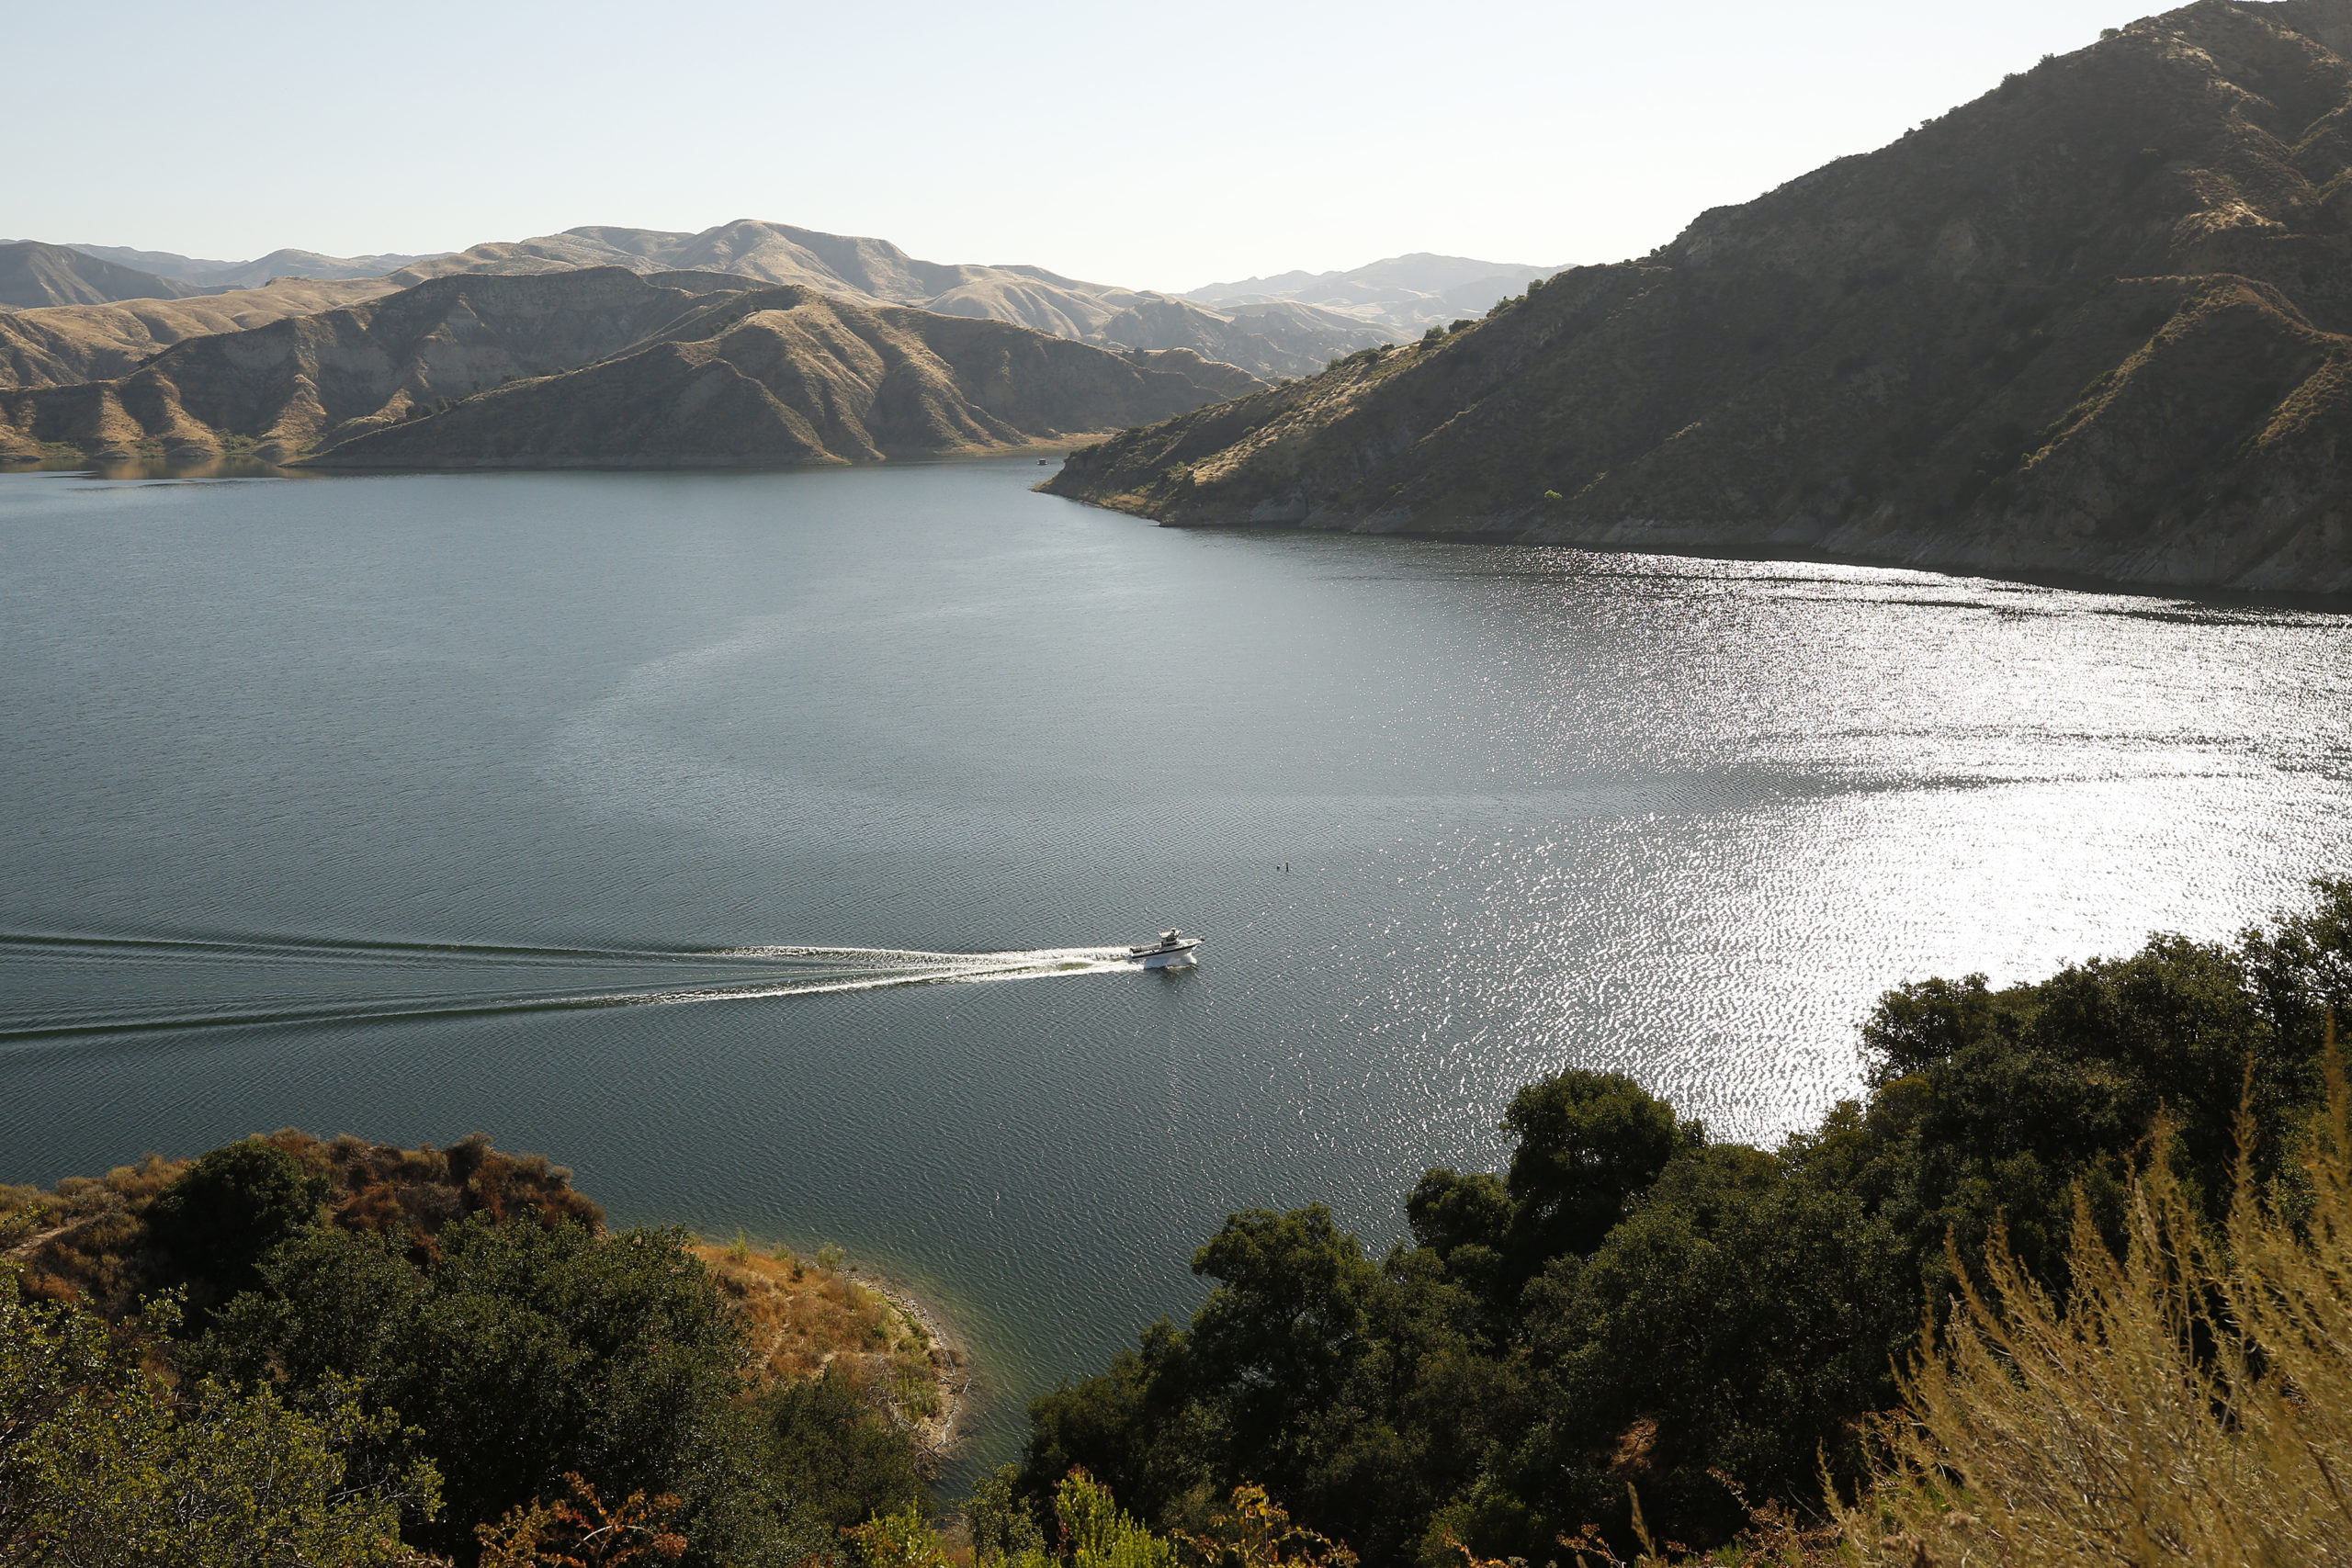 Ventura County Sheriffs Search and Rescue dive team located a body Monday morning in Lake Piru